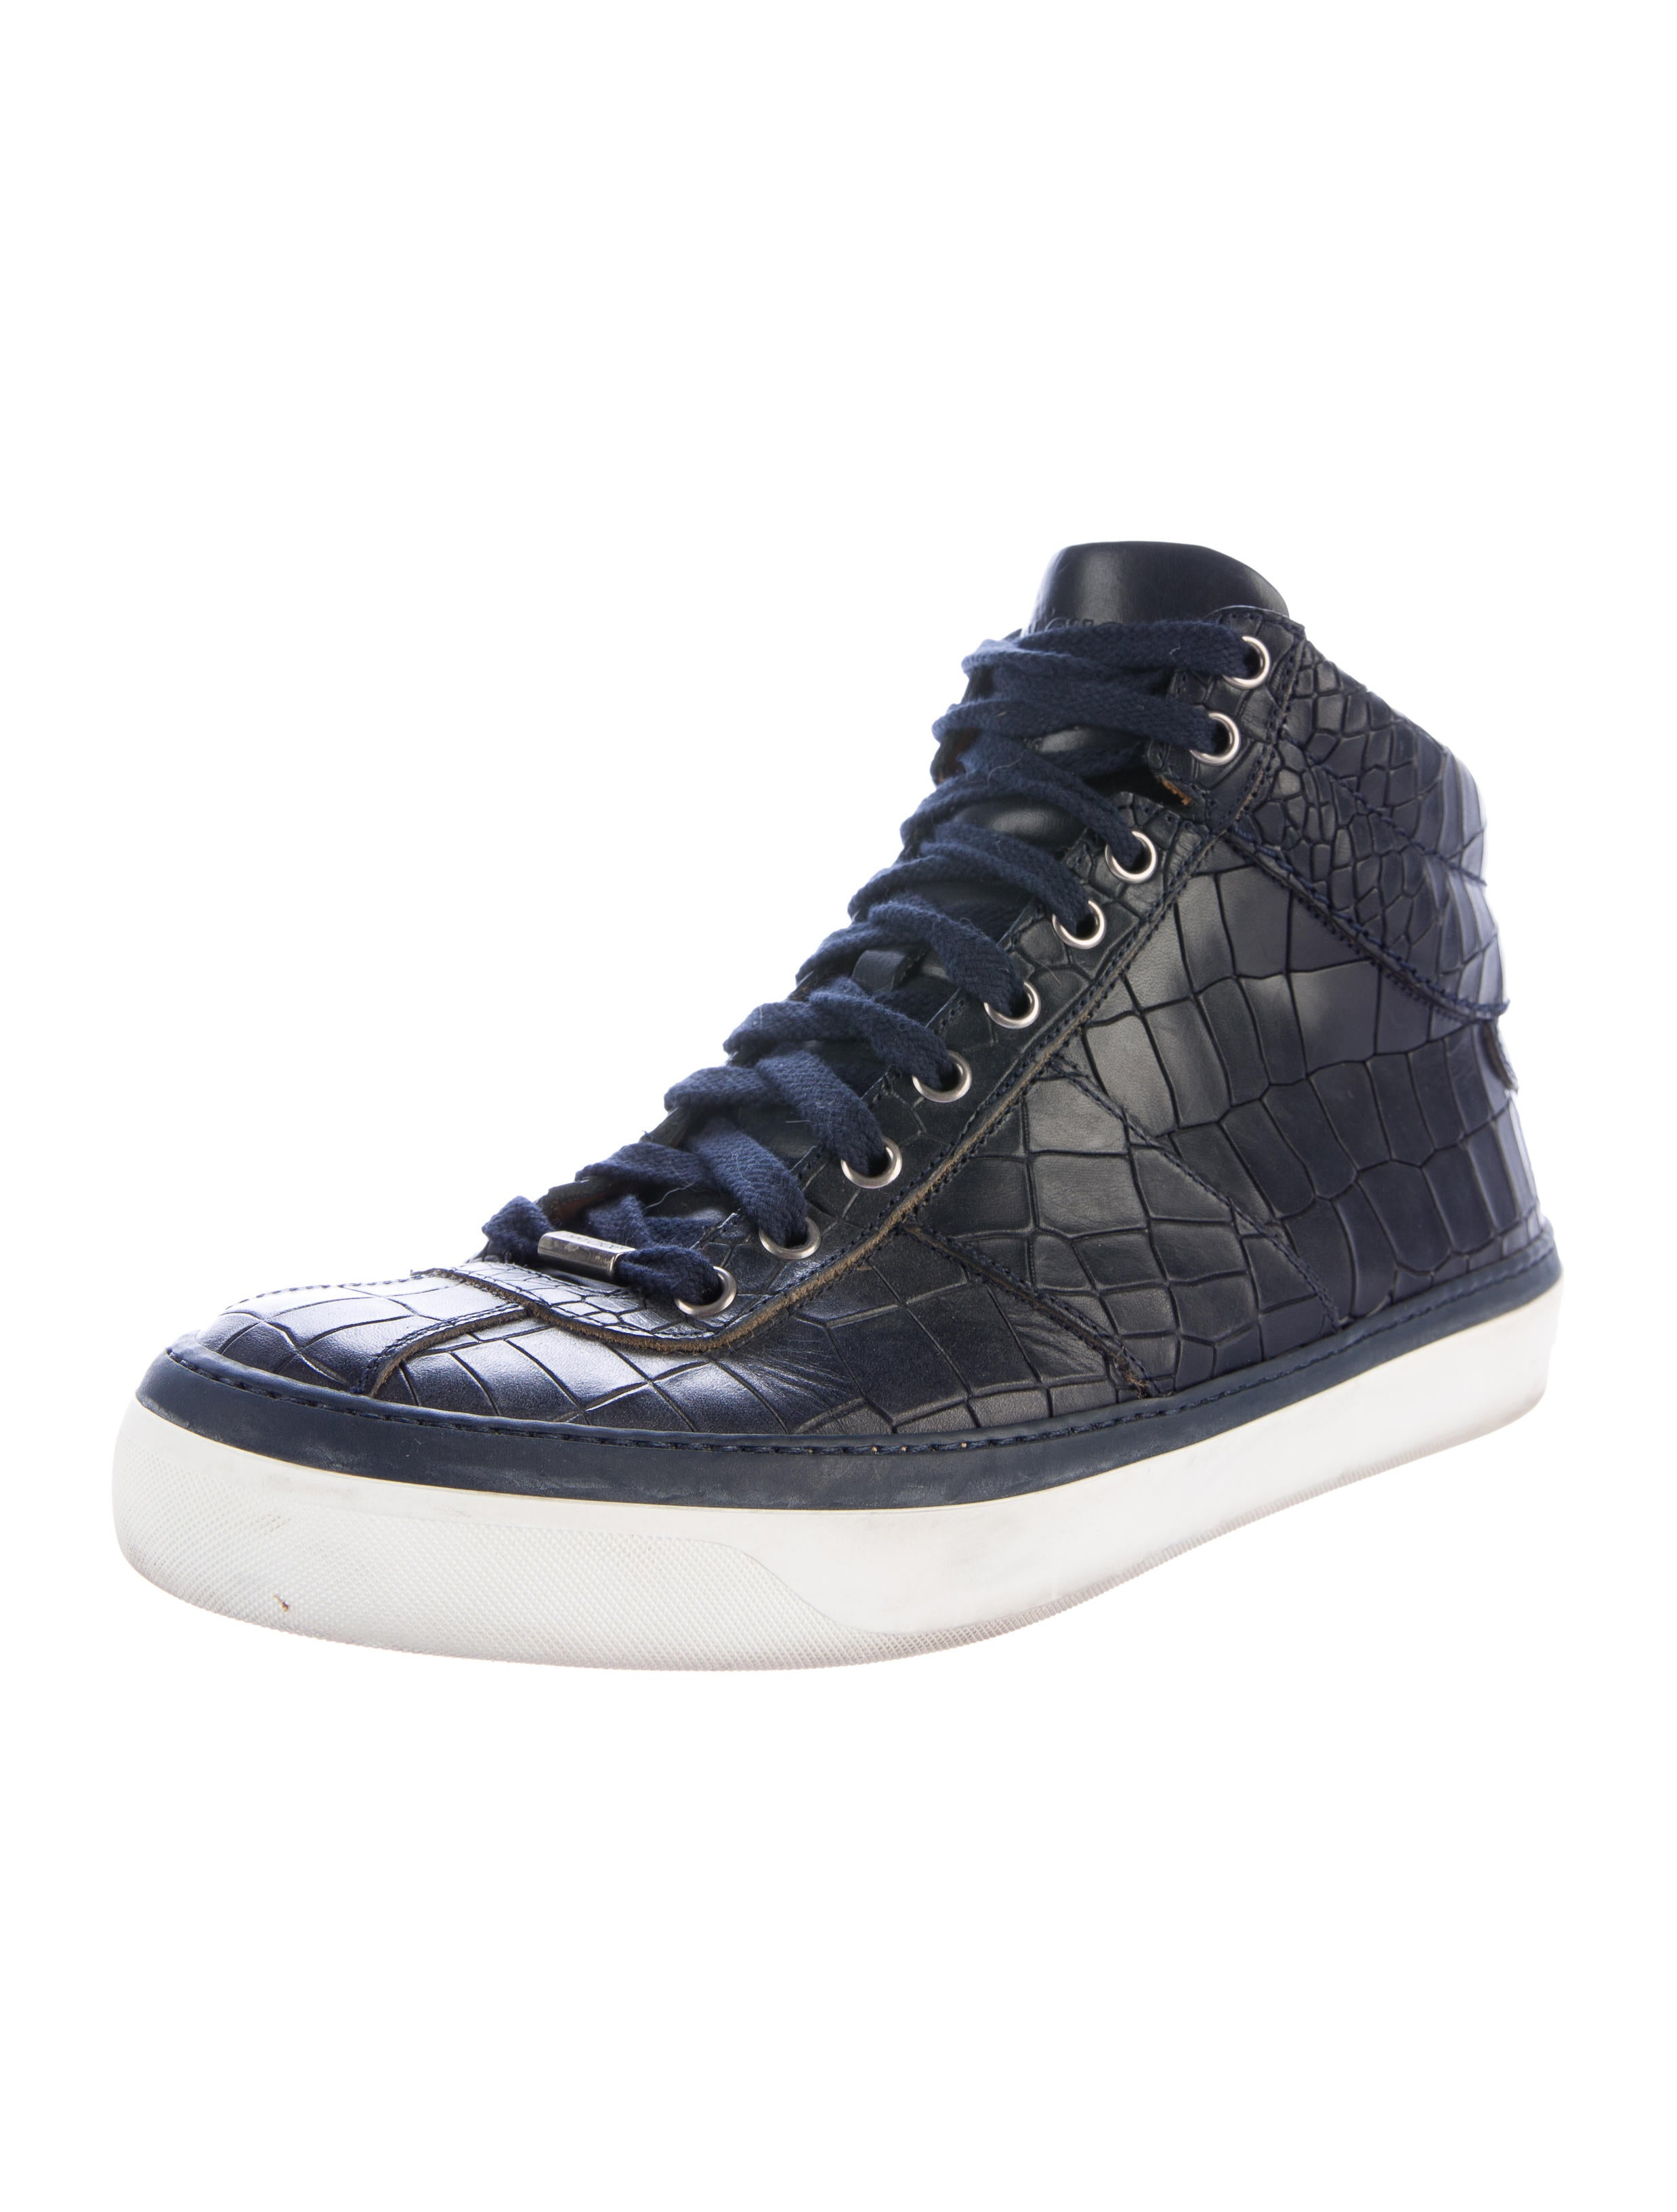 jimmy choo embossed high top sneakers shoes jim63821 the realreal. Black Bedroom Furniture Sets. Home Design Ideas